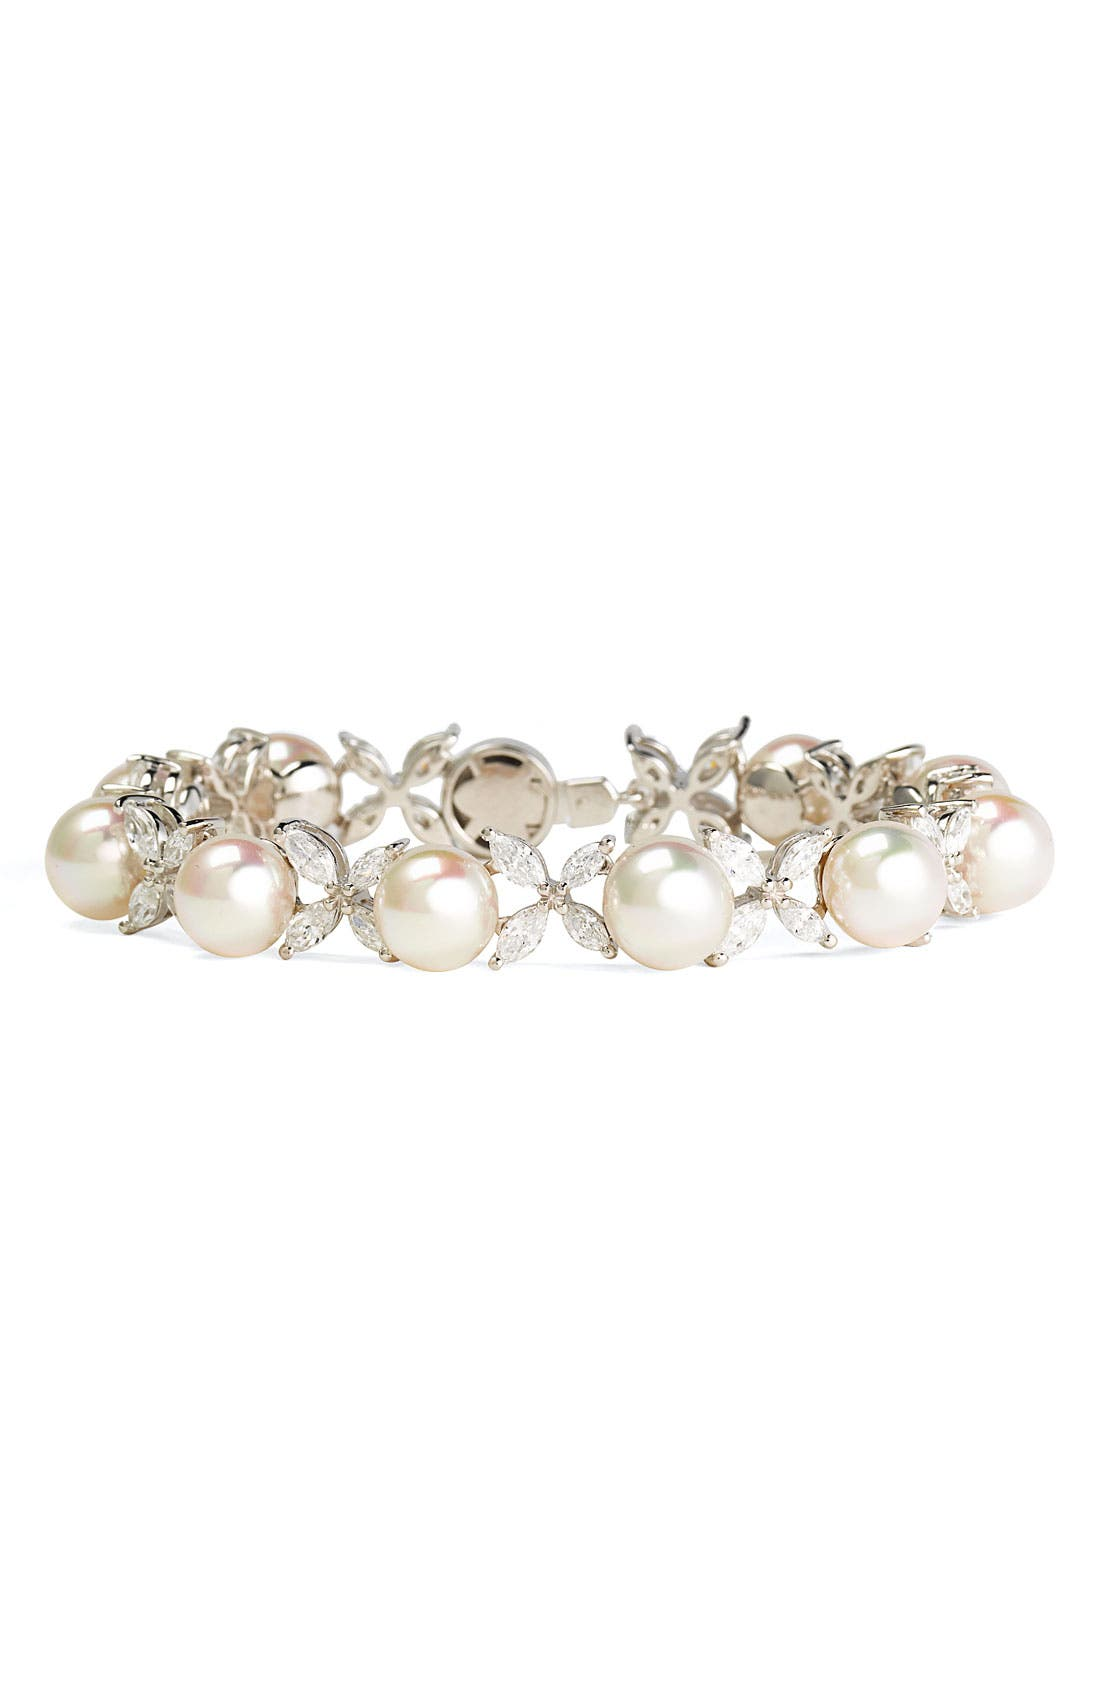 Alternate Image 1 Selected - Majorica 'Butterfly' Cubic Zirconia & Pearl Bracelet